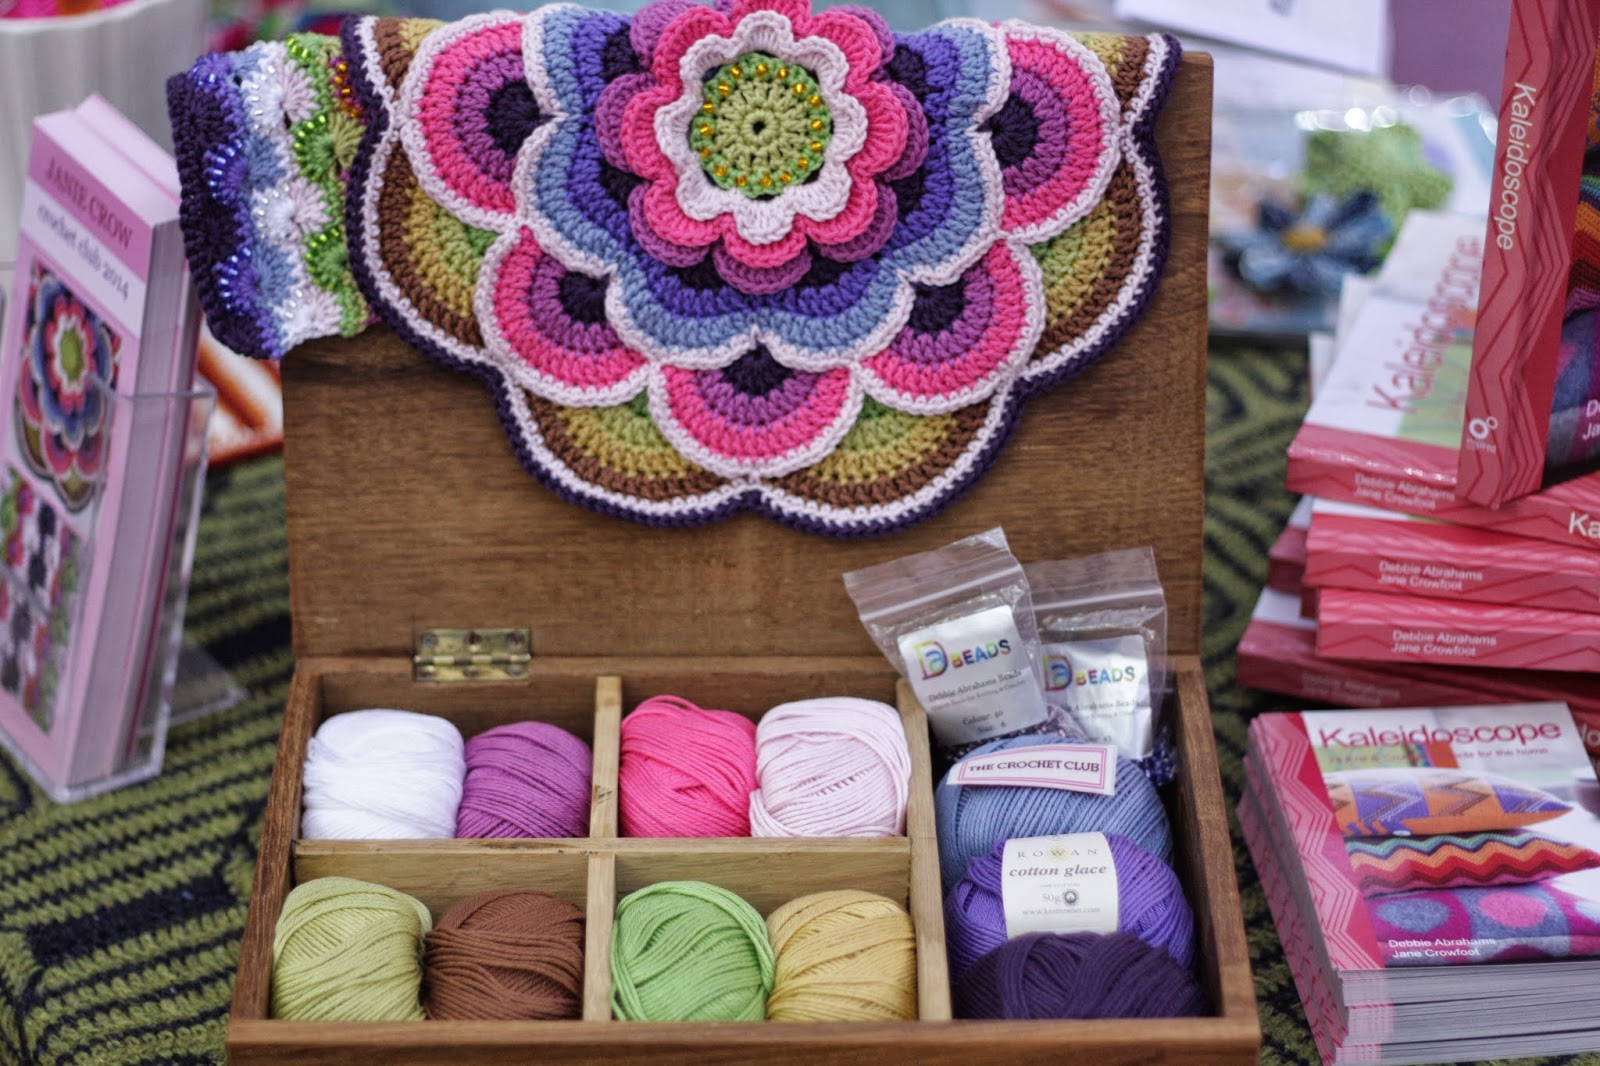 Things Wot I Have Made: The Knitting and Stitching Show 2013